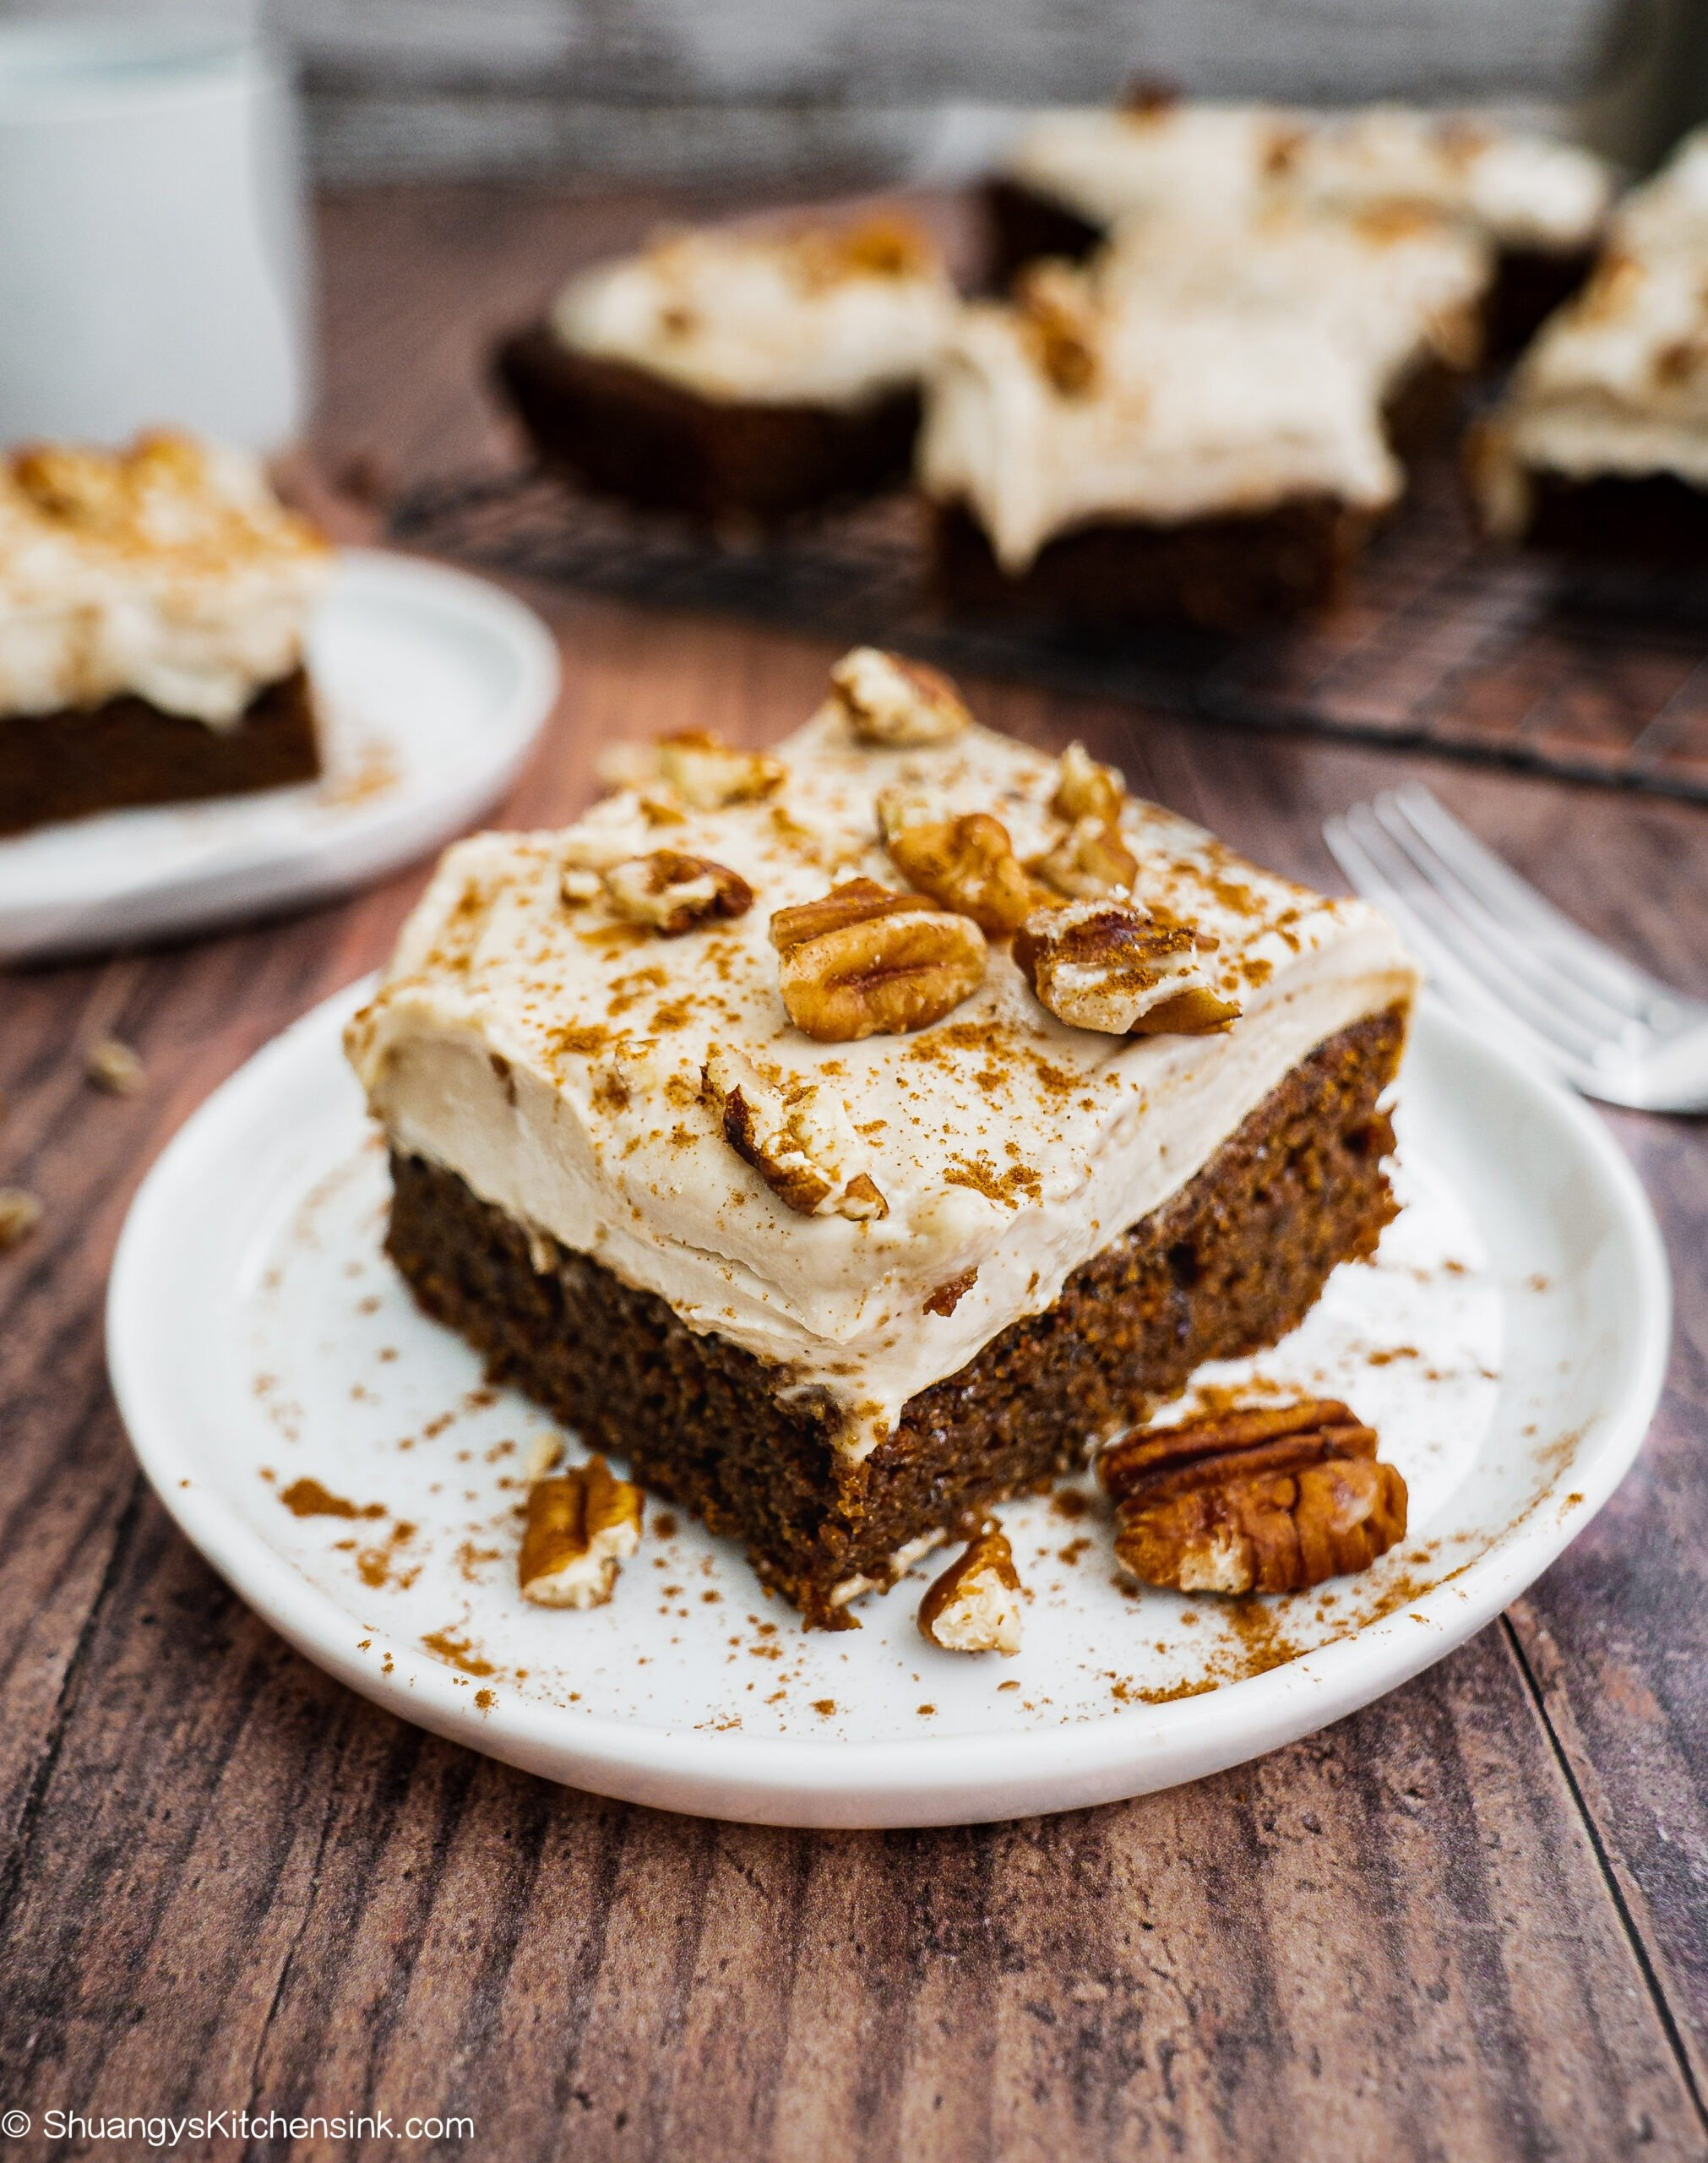 A piece of gingerbread cake with cashew cream frosting is on a wood board. There are some pecans and sprinkle of cinnamon on top.